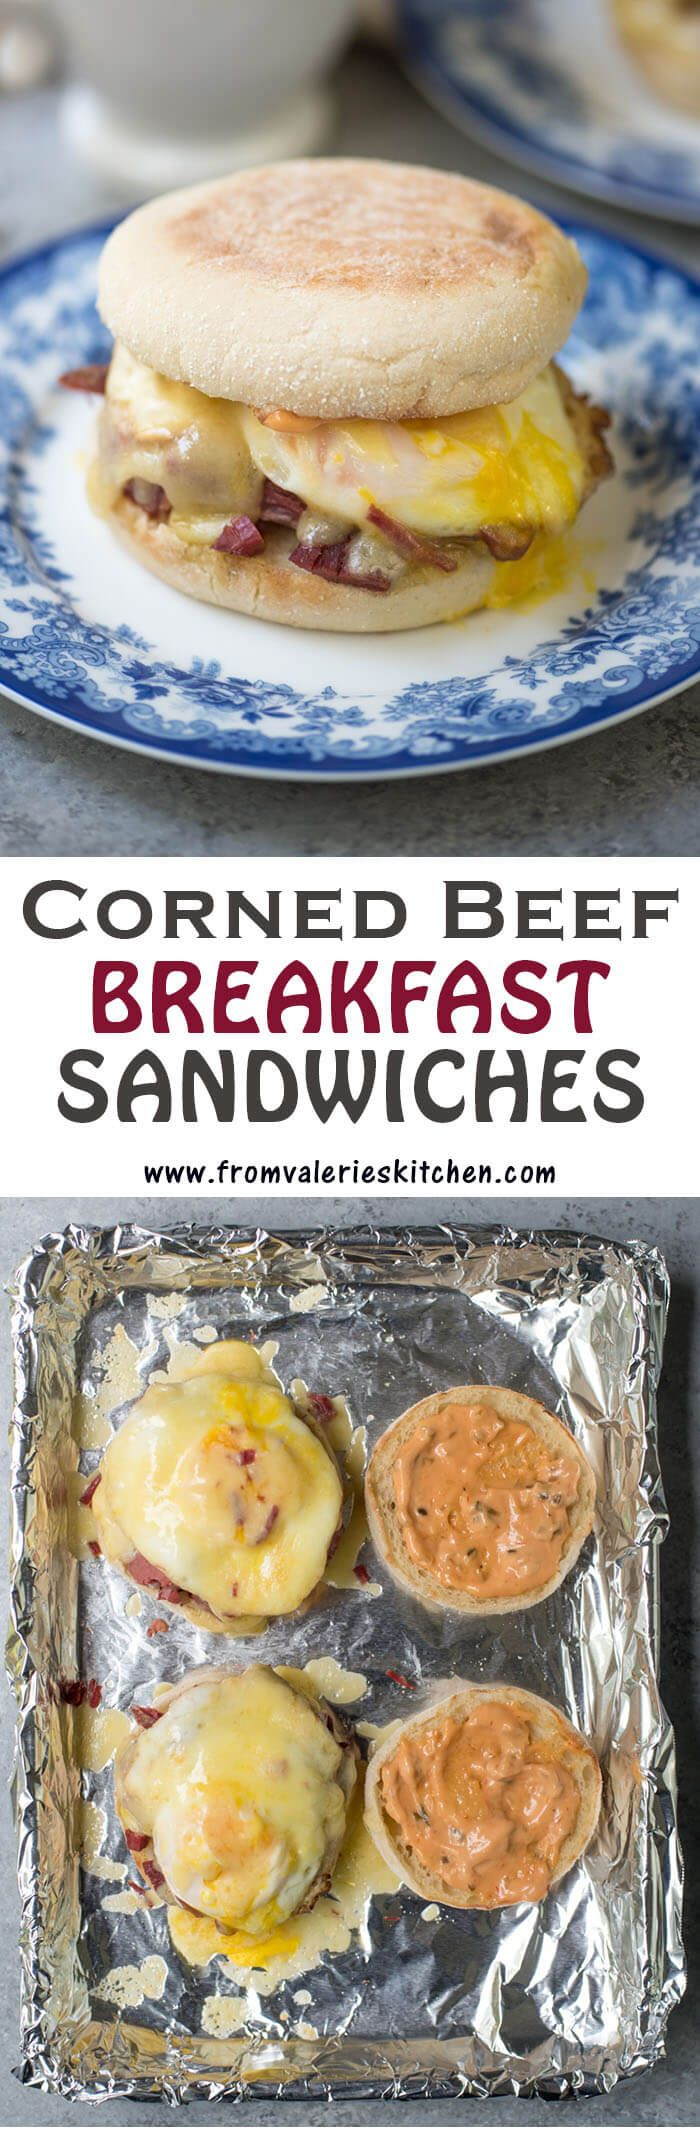 These Corned Beef Breakfast Sandwiches are a delicious way to make use of any leftover corned beef you may have on your hands after St. Patrick's Day.